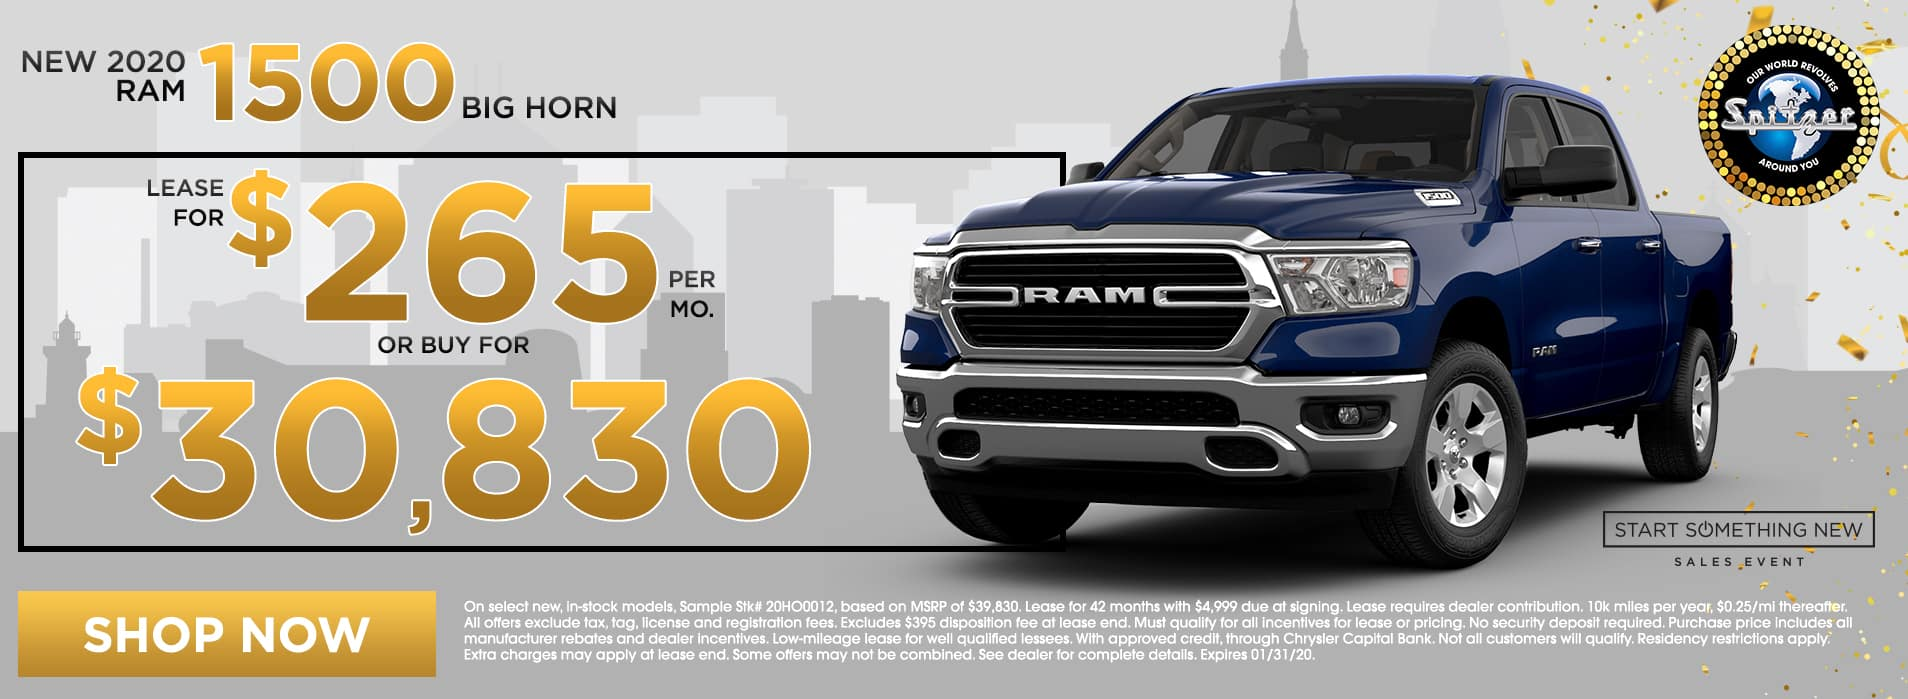 RAM 1500   Lease for $265 per mo / Buy for $30,830